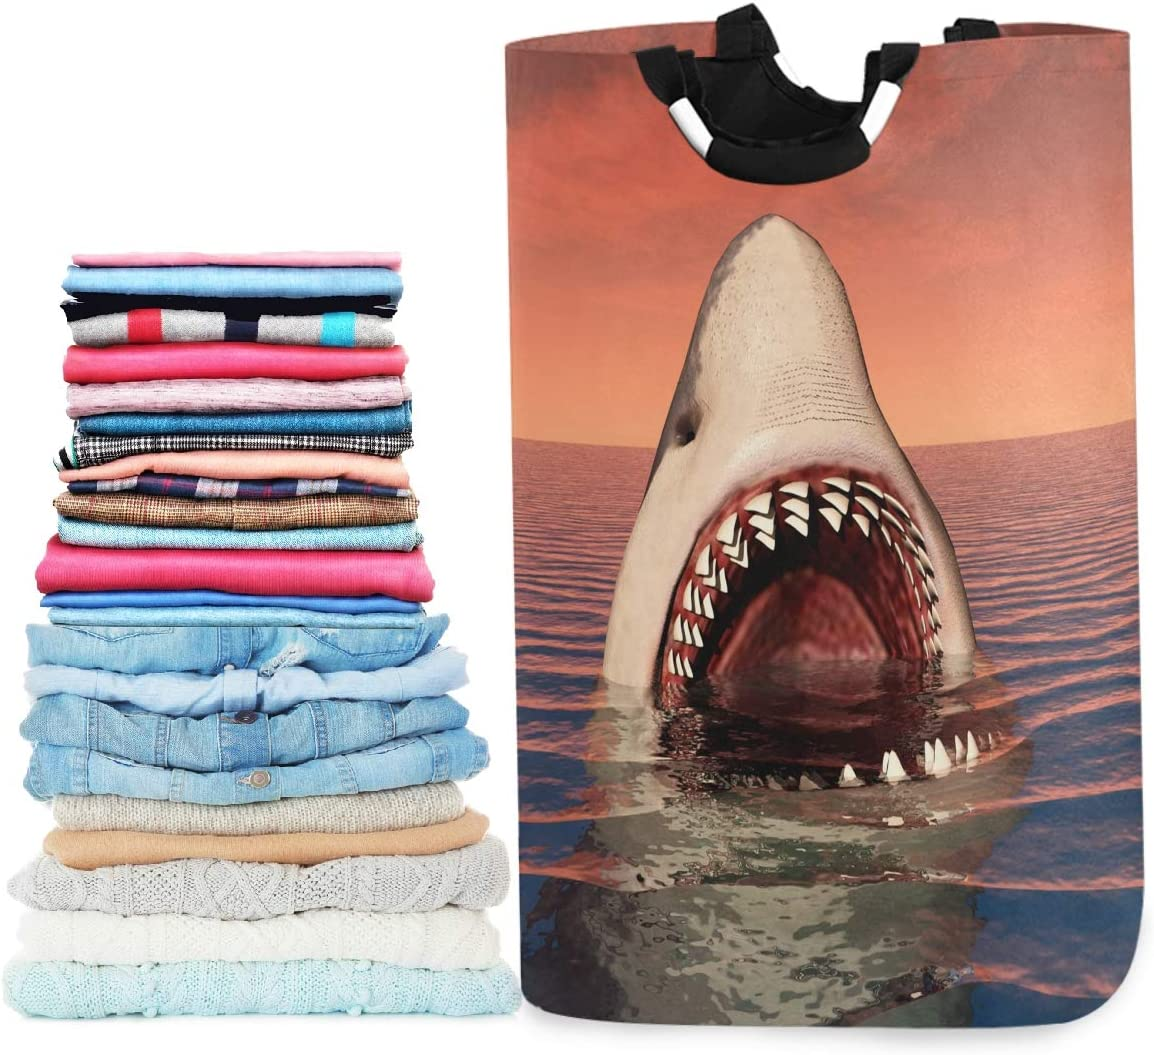 visesunny Collapsible Laundry Basket Shark Animal 3D Print Large Laundry Hamper Oxford Fabric Dirty Clothes Toy Organizer with Handle for Bathroom Kids Room Dorm